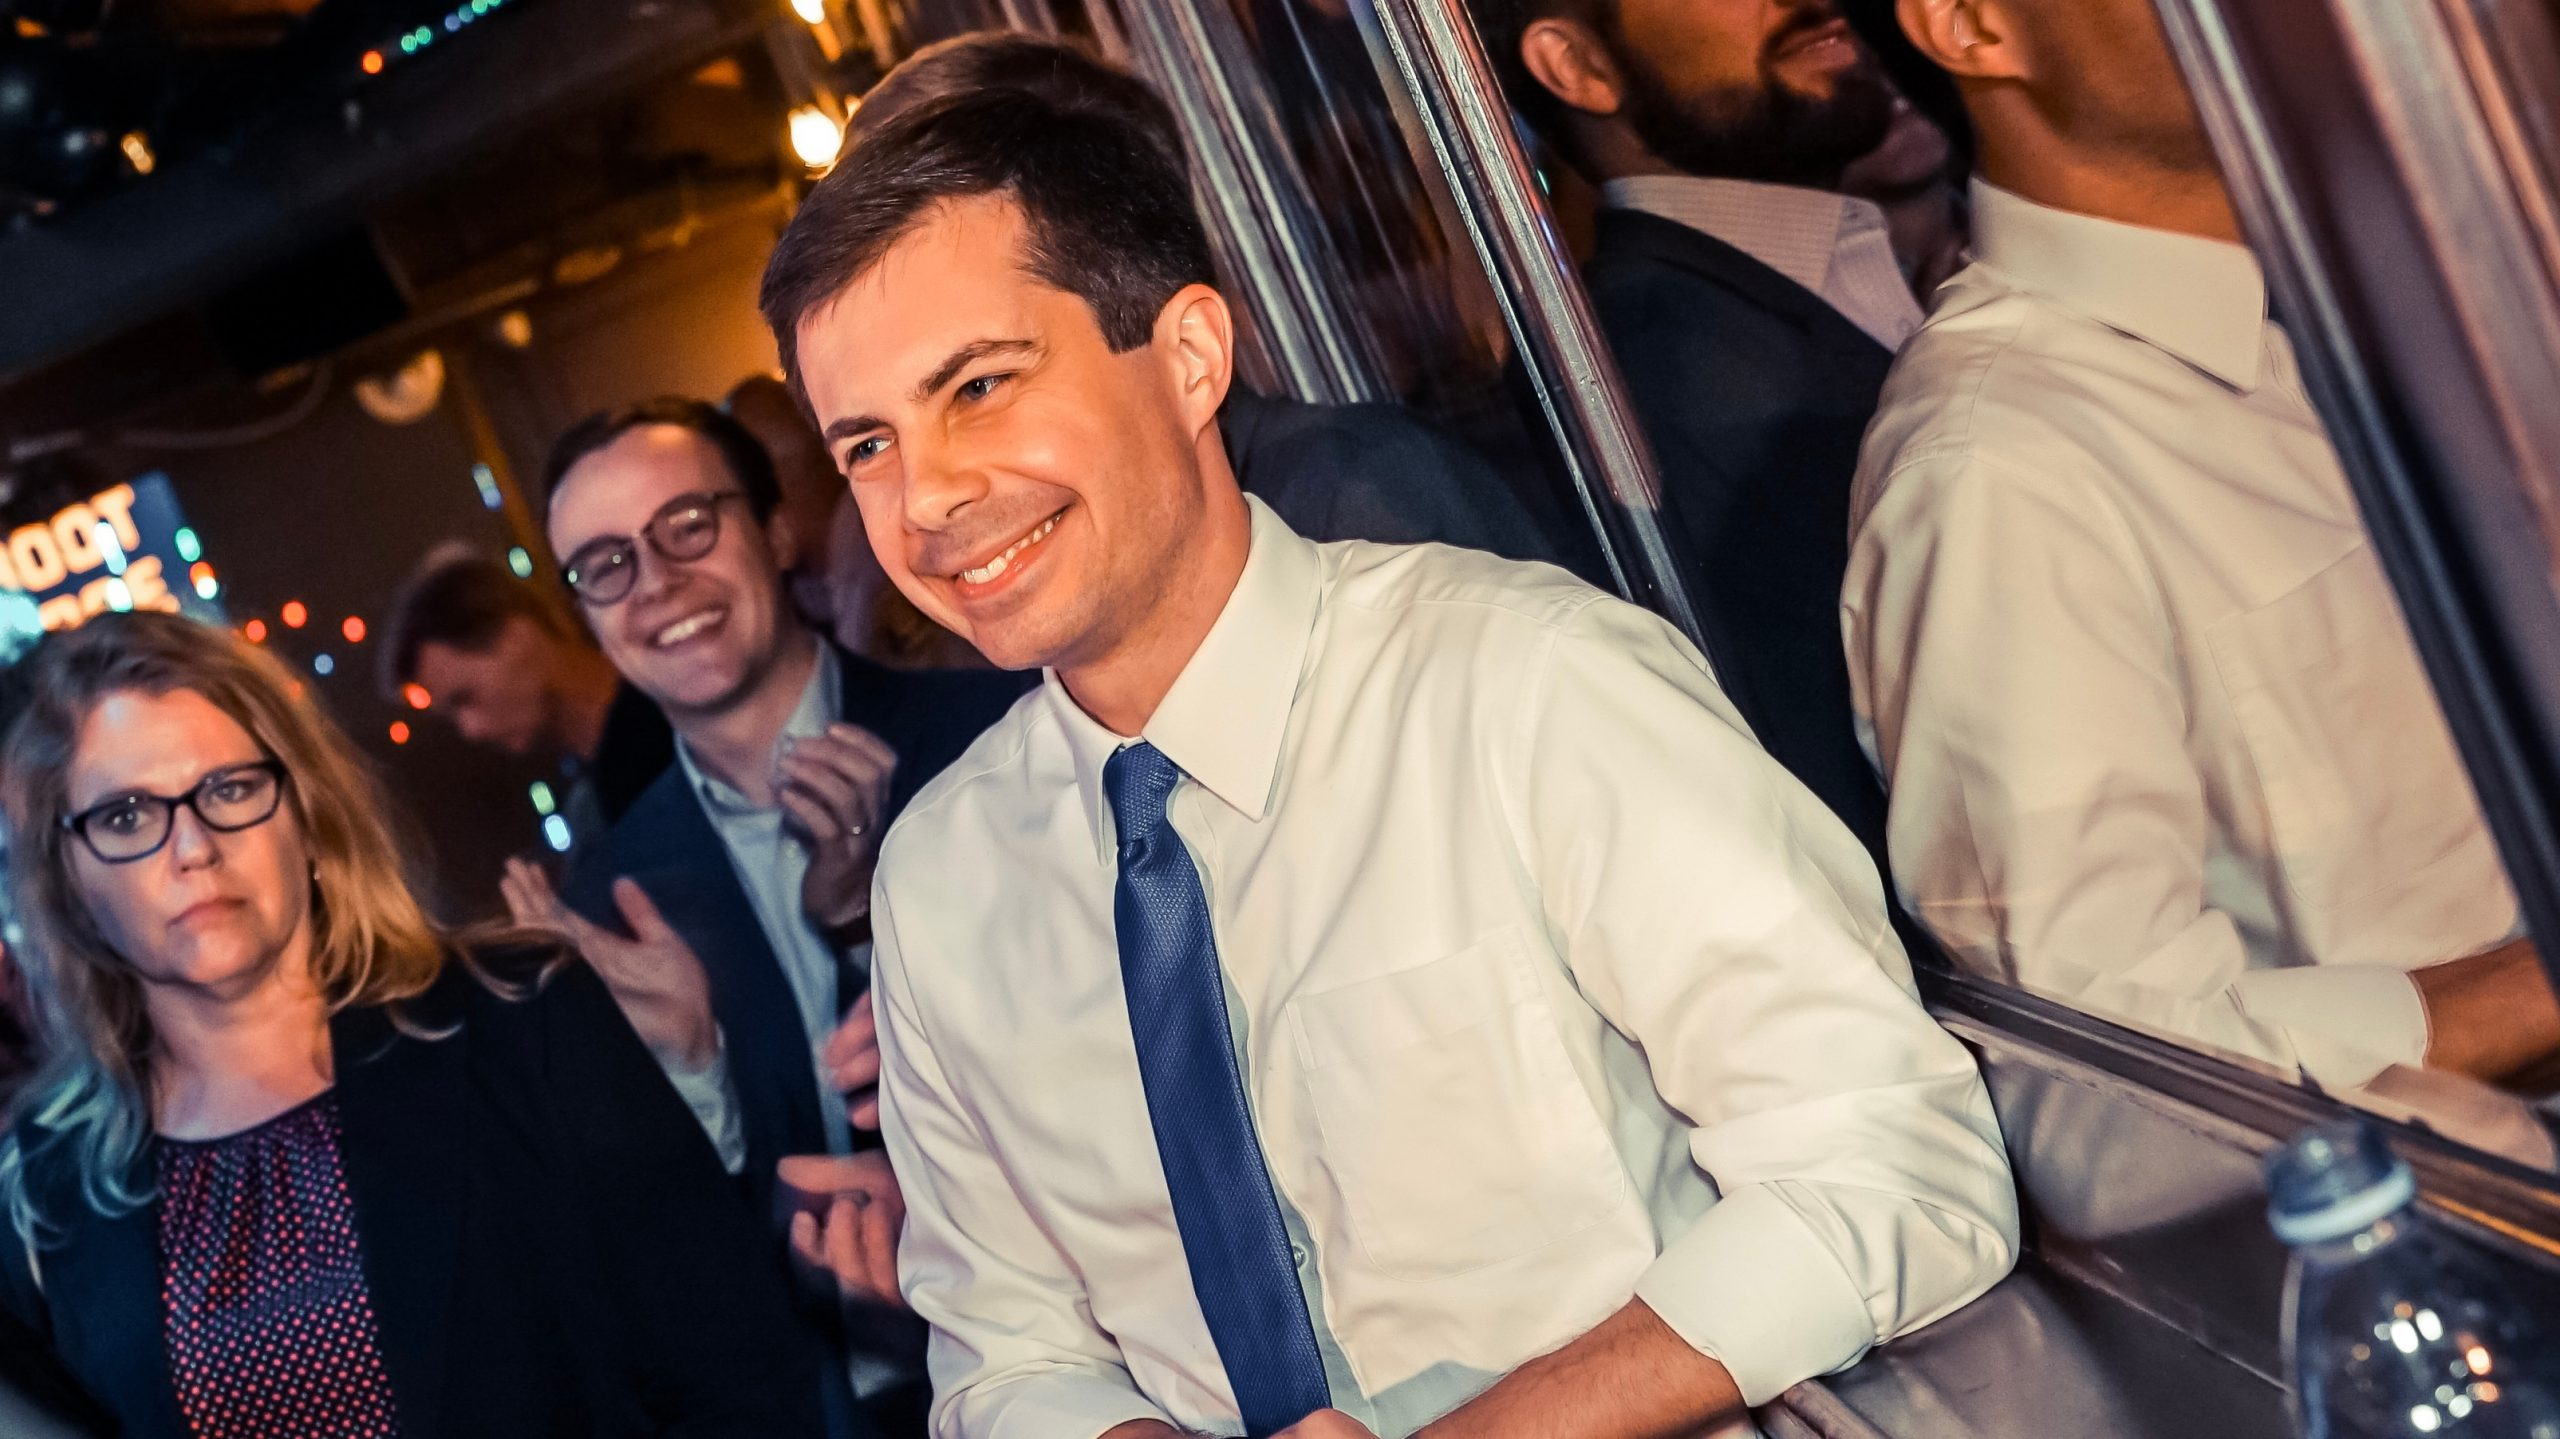 Mayor Pete Buttigieg At The Abbey in West Hollywood May 2019